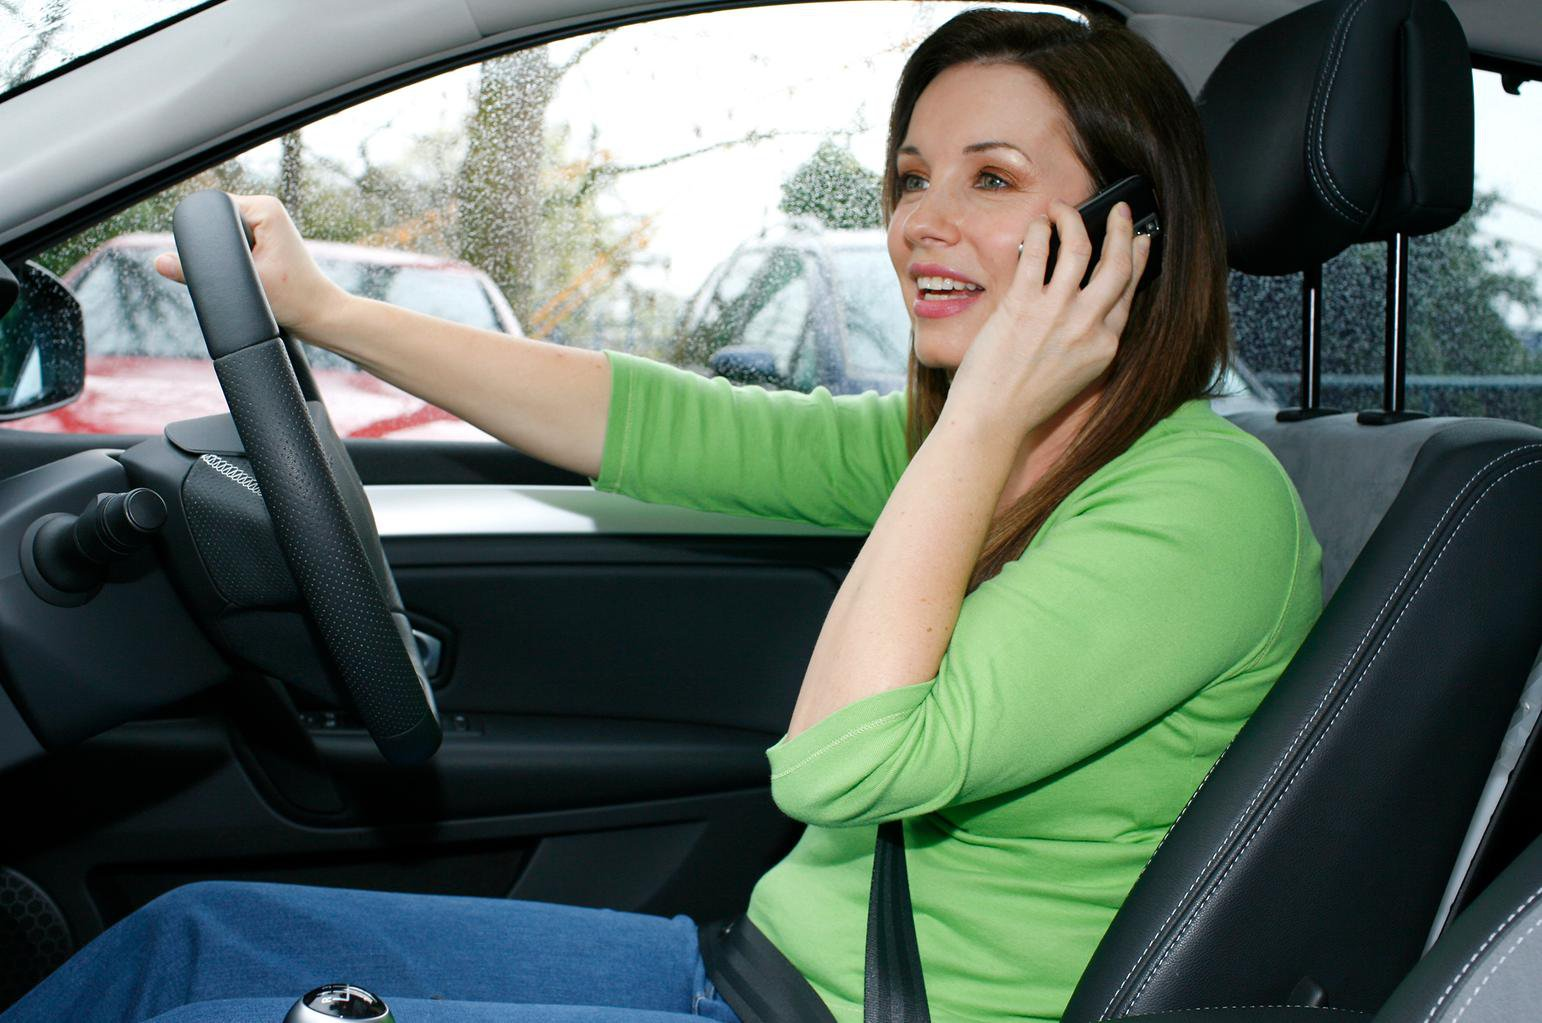 Mobile phone use while driving reaches epidemic levels